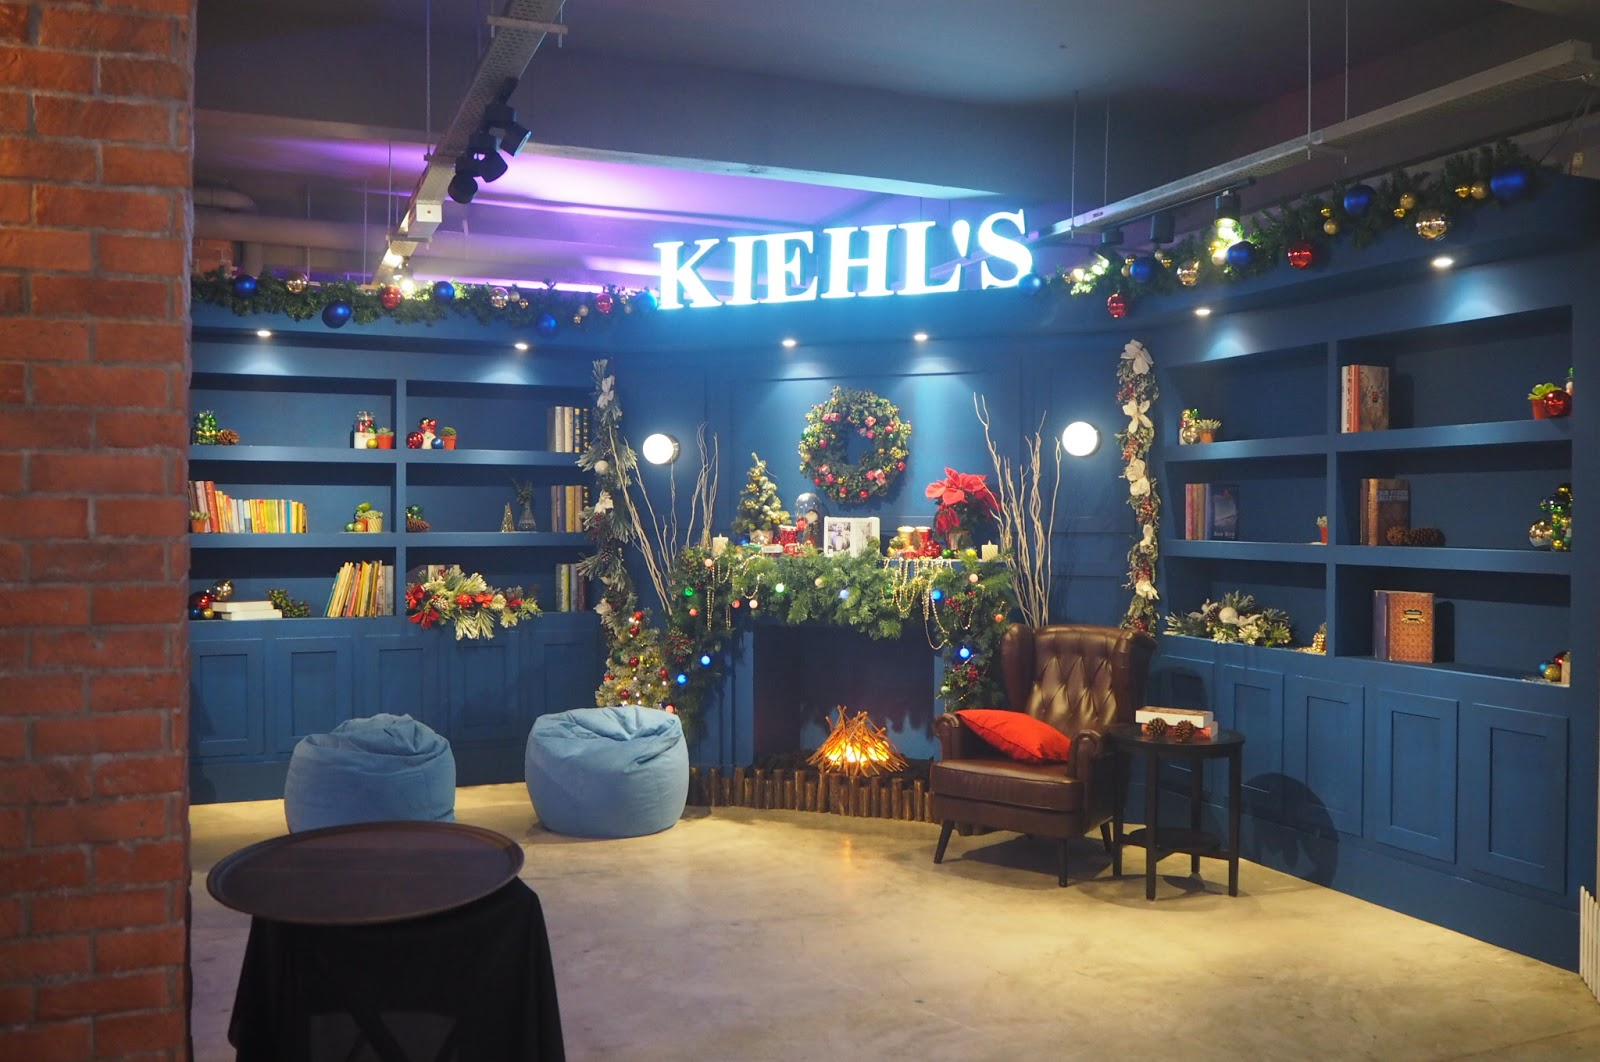 [Event] KIEHL'S Showcased 2018 Holiday Collection